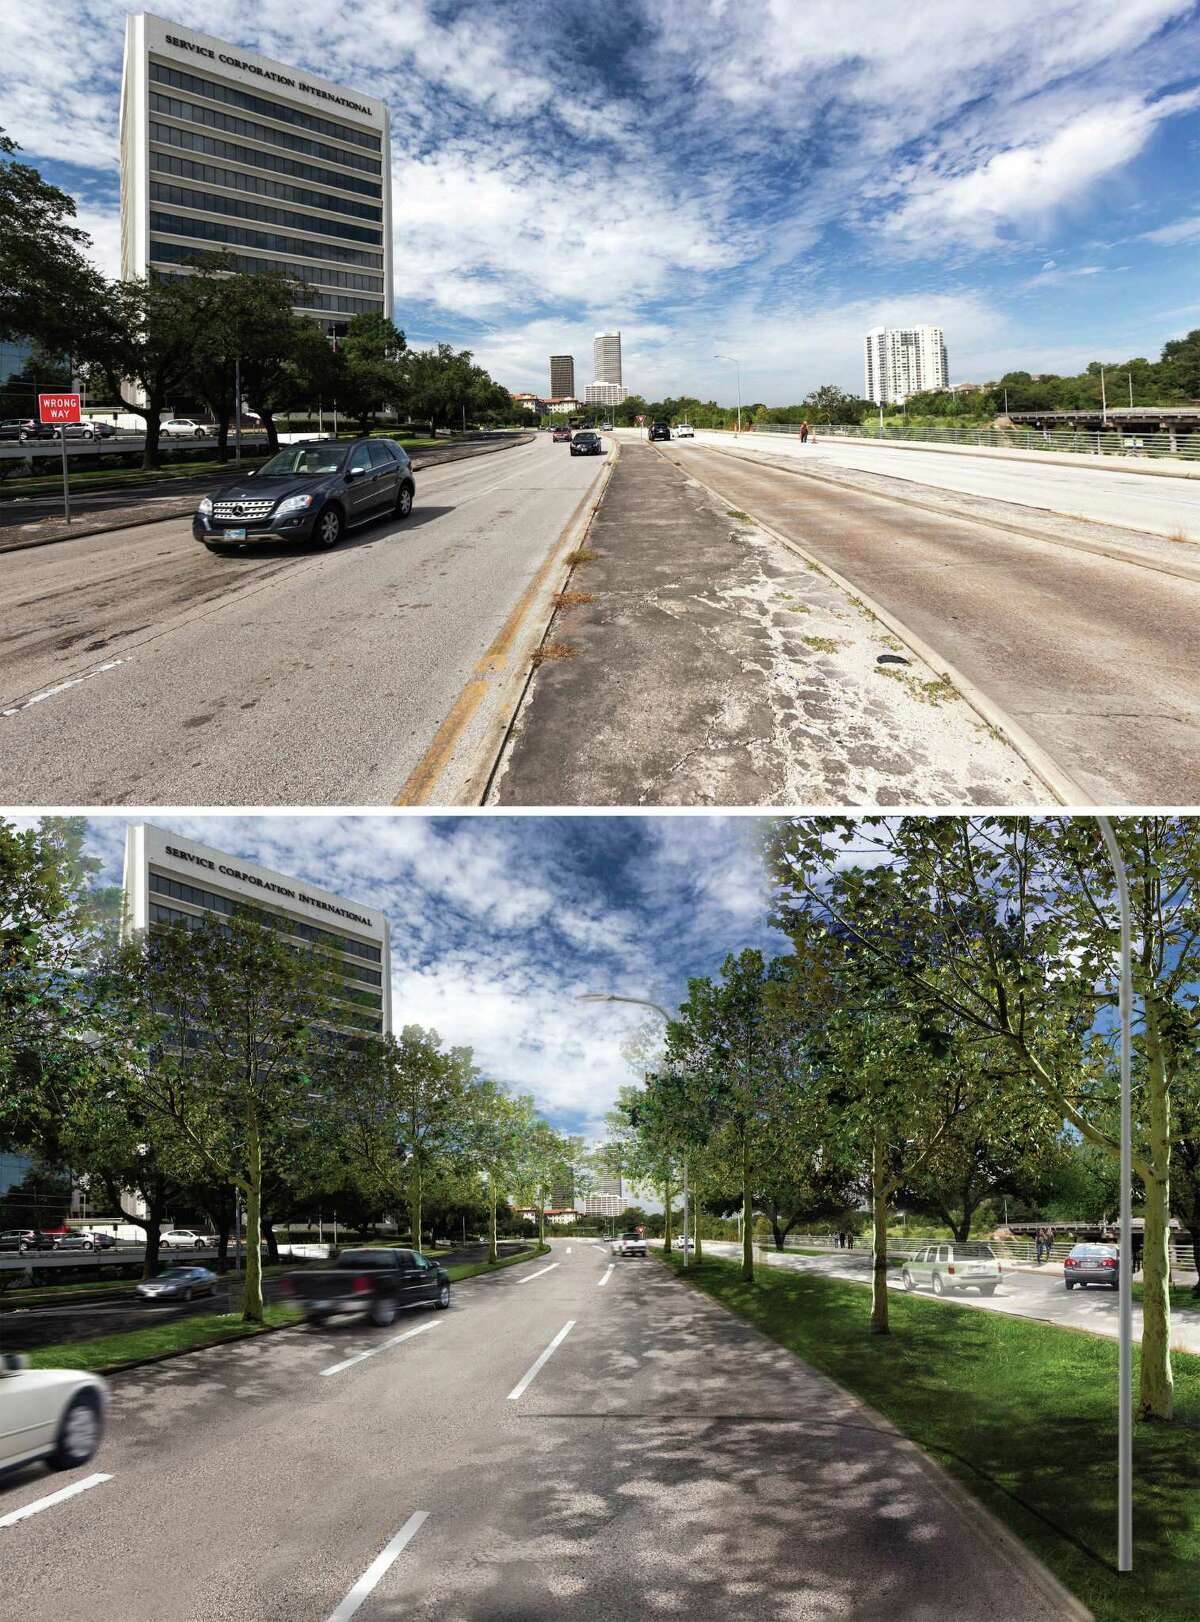 Before (top) and after renderings of Allen Parkway looking west at Taft Street. The City of Houston and Downtown Houston Management District have announced a $10 million renovation to Allen Parkway that will include shifting the lanes to make the current westbound lane a feeder lane to increase parking along the Buffalo Bayou Trail system. Rendering by SWA